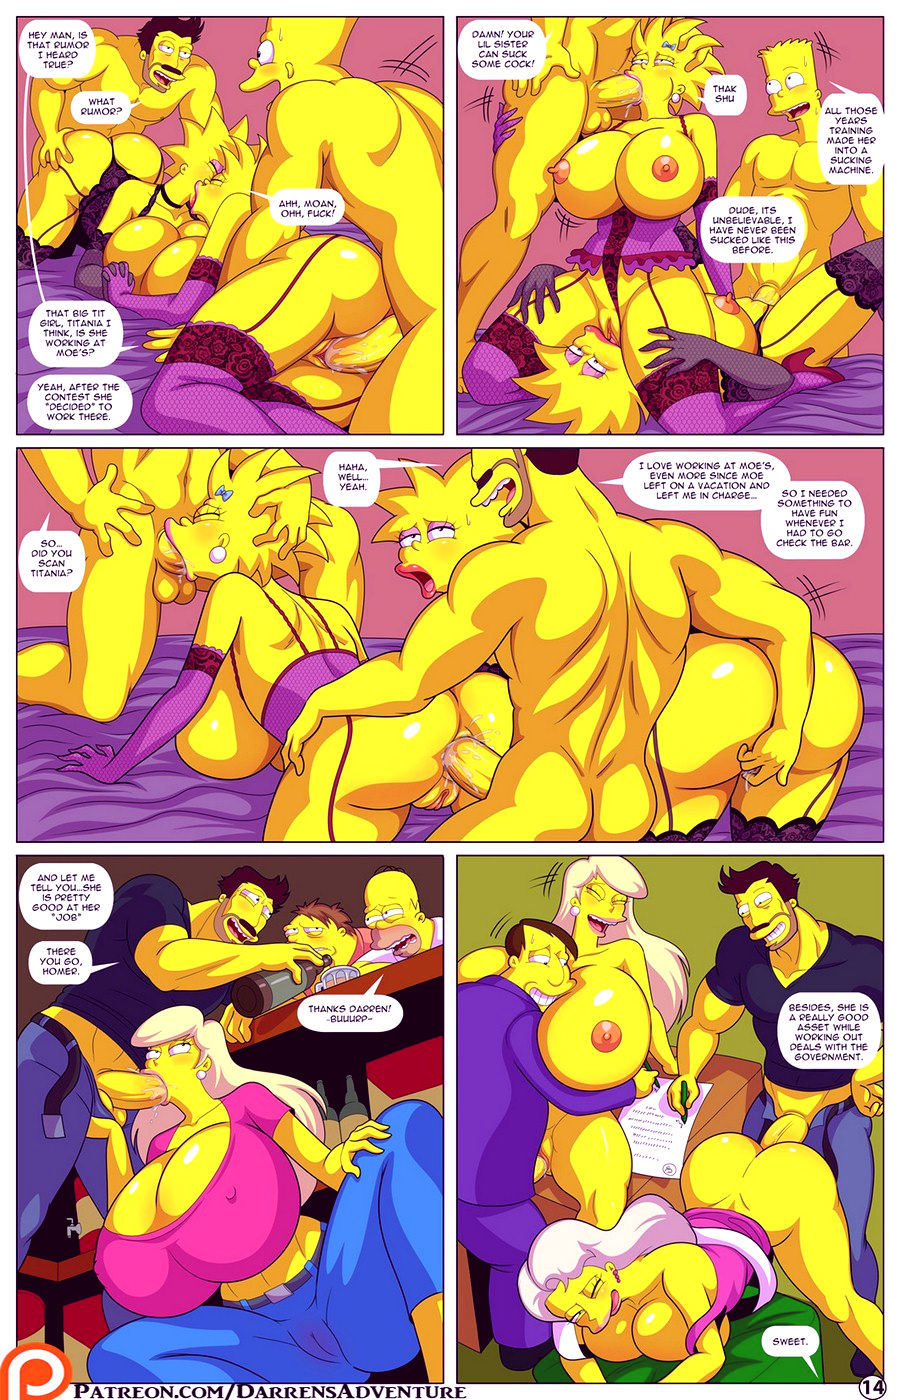 Darrens adventure or welcome to springfield porn comic picture 87